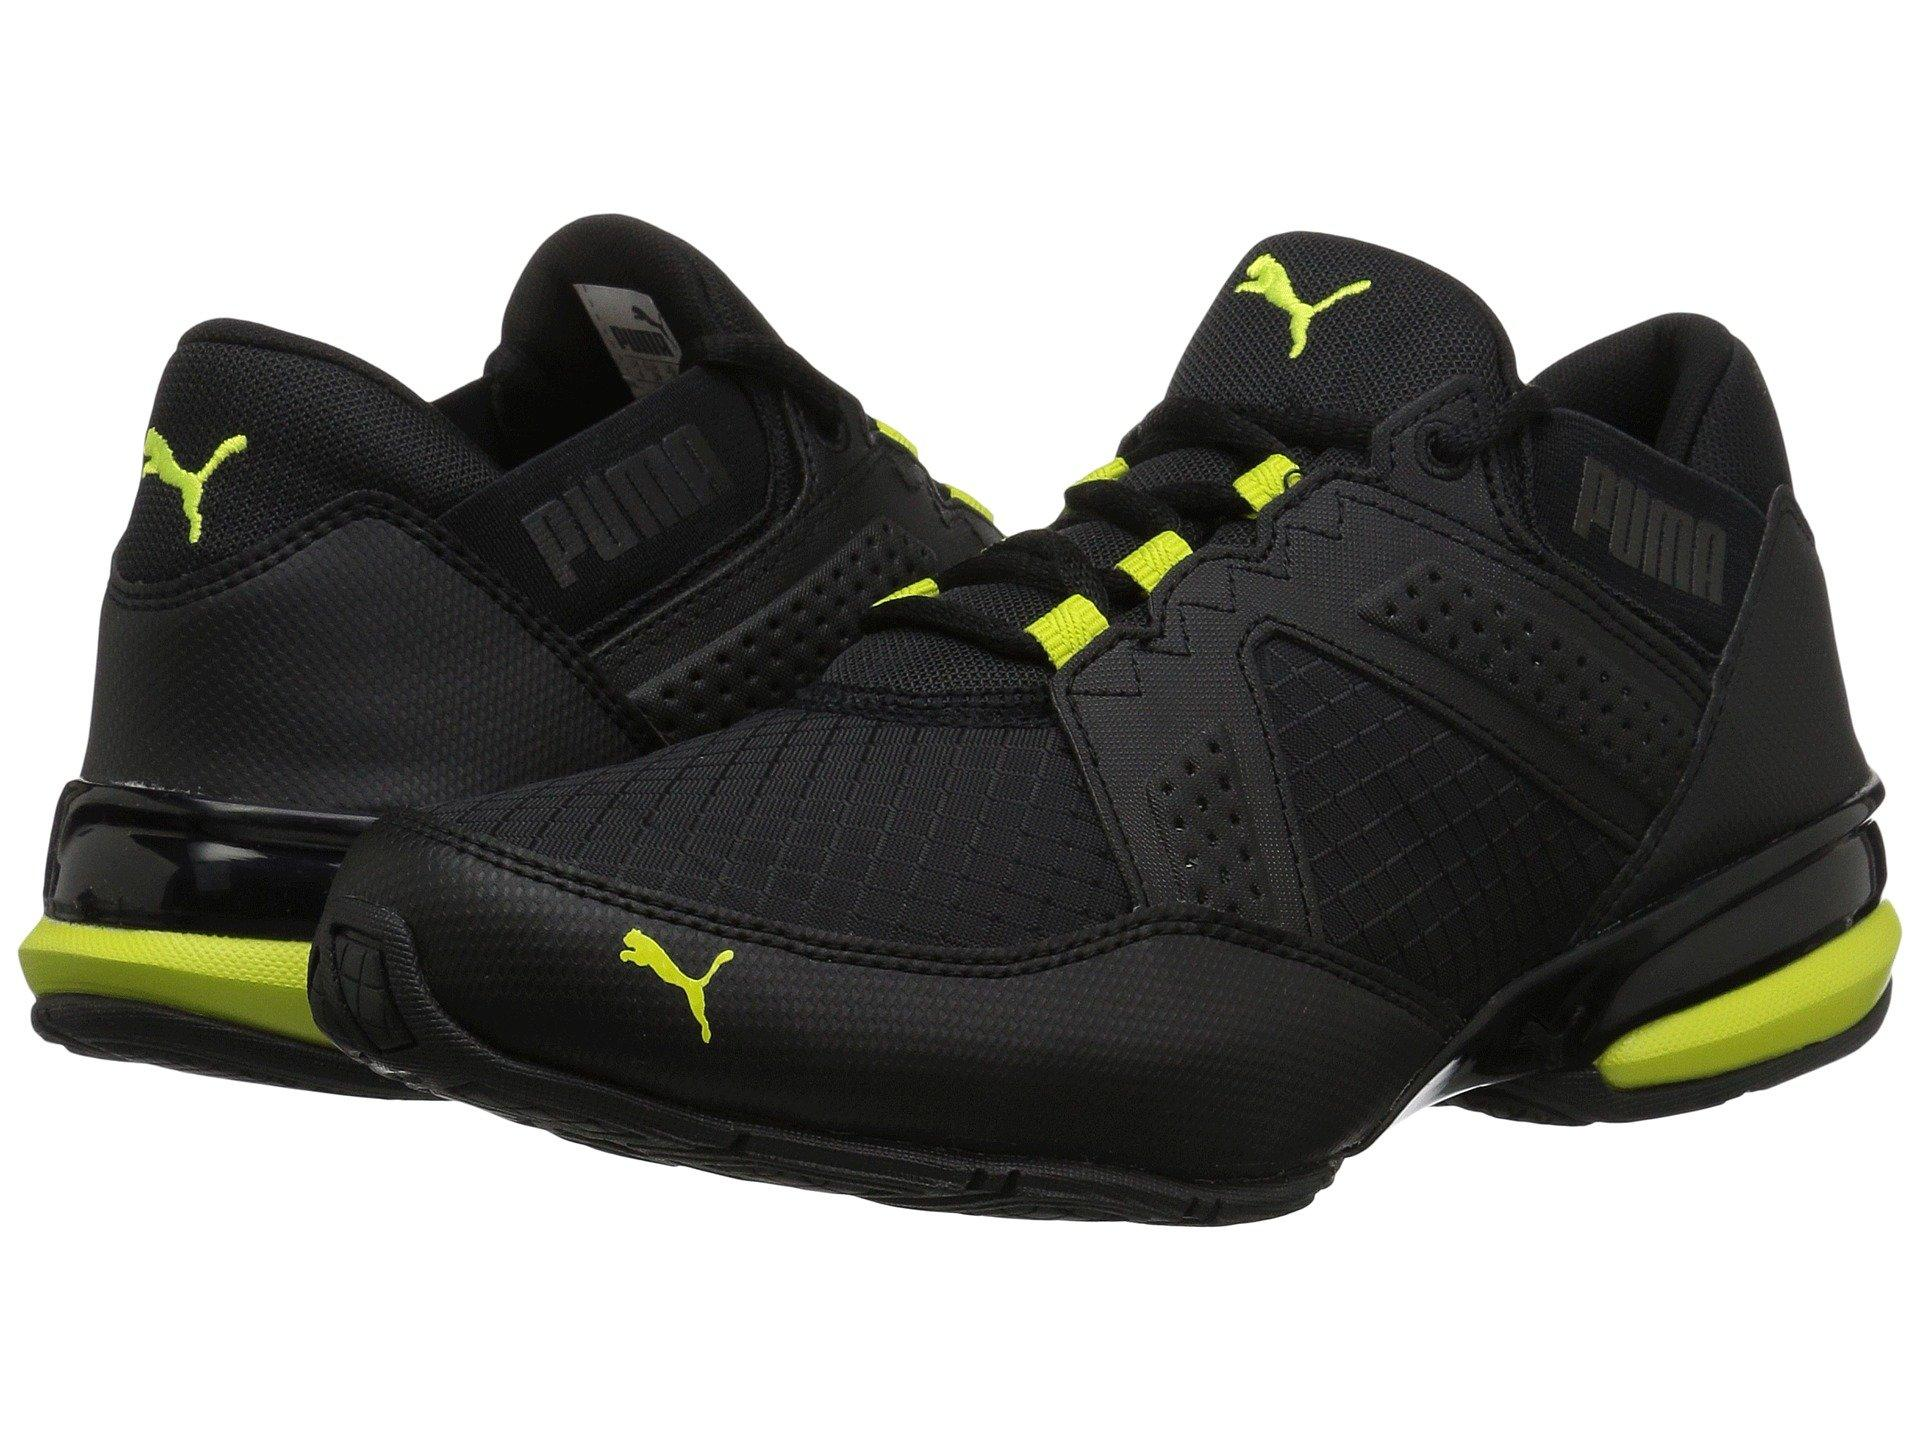 afdf56de1a88 Puma Enzin Ripstop In Black Neutral Grey Yellow